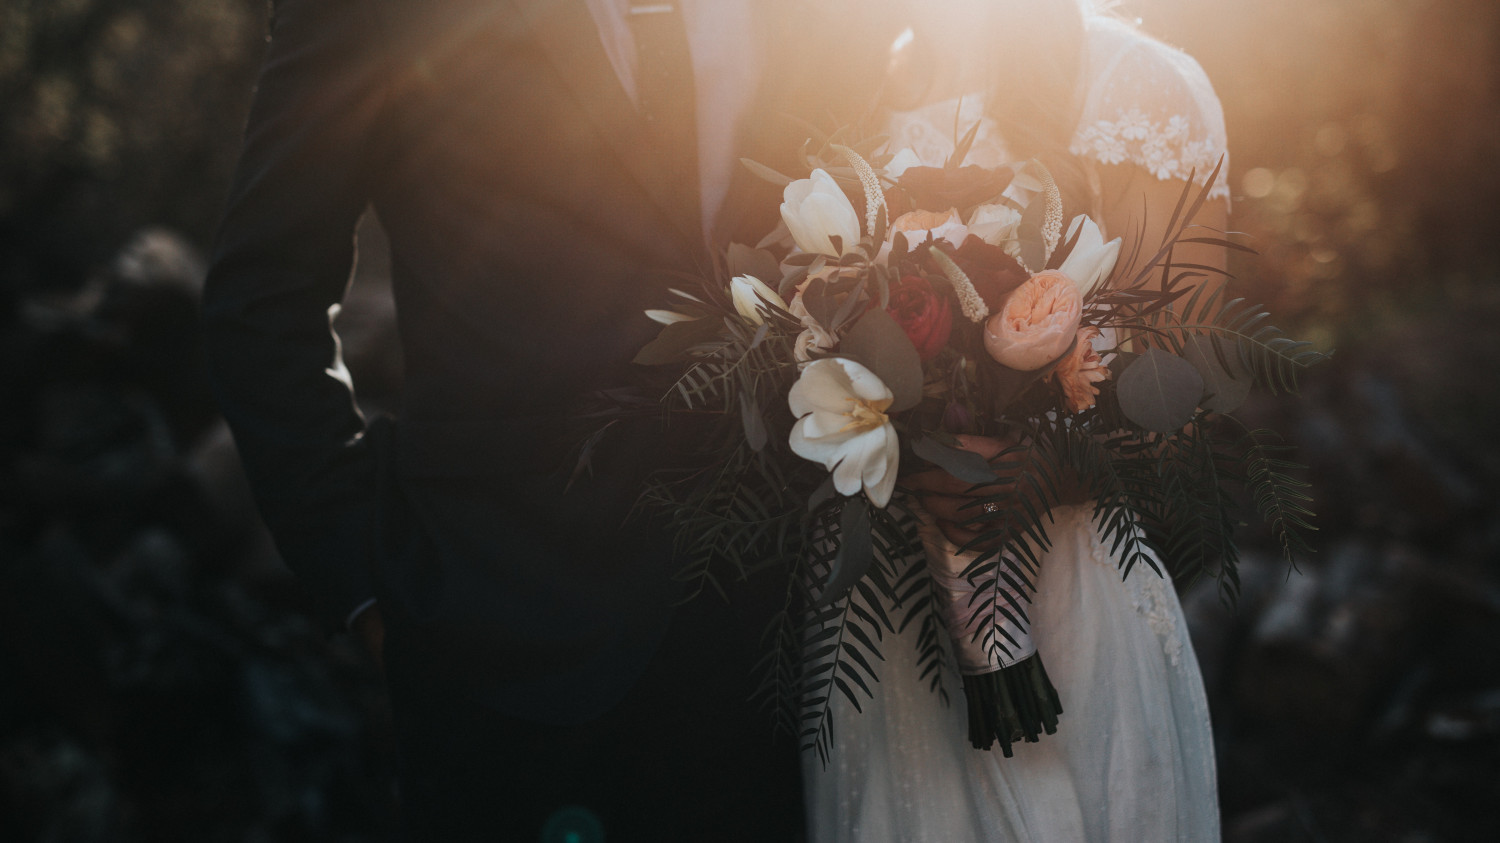 Image of a bride and groom holding a wedding bouquet